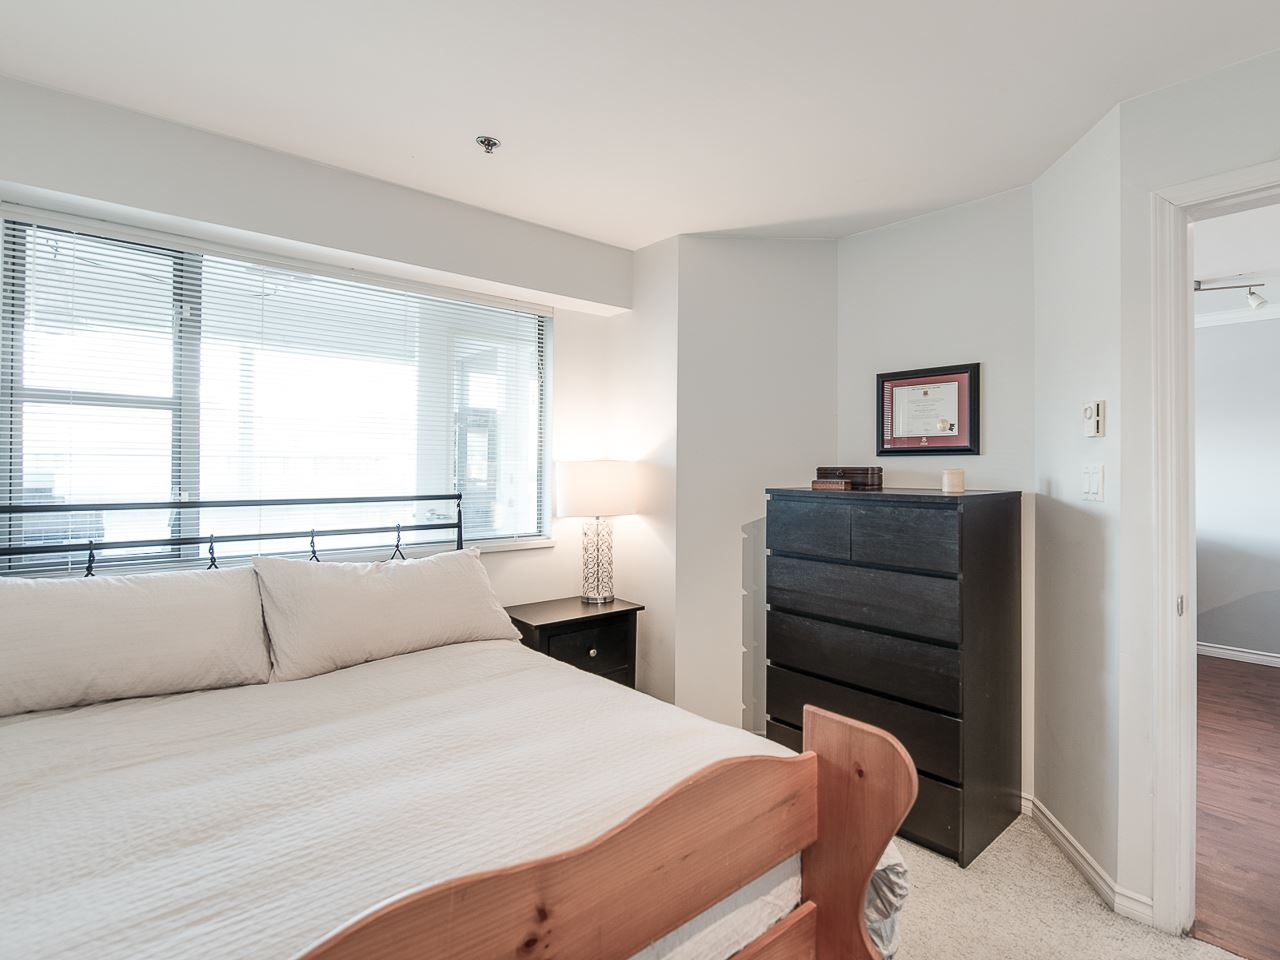 Photo 6: 304 2025 STEPHENS STREET in Vancouver: Kitsilano Condo for sale (Vancouver West)  : MLS® # R2158946